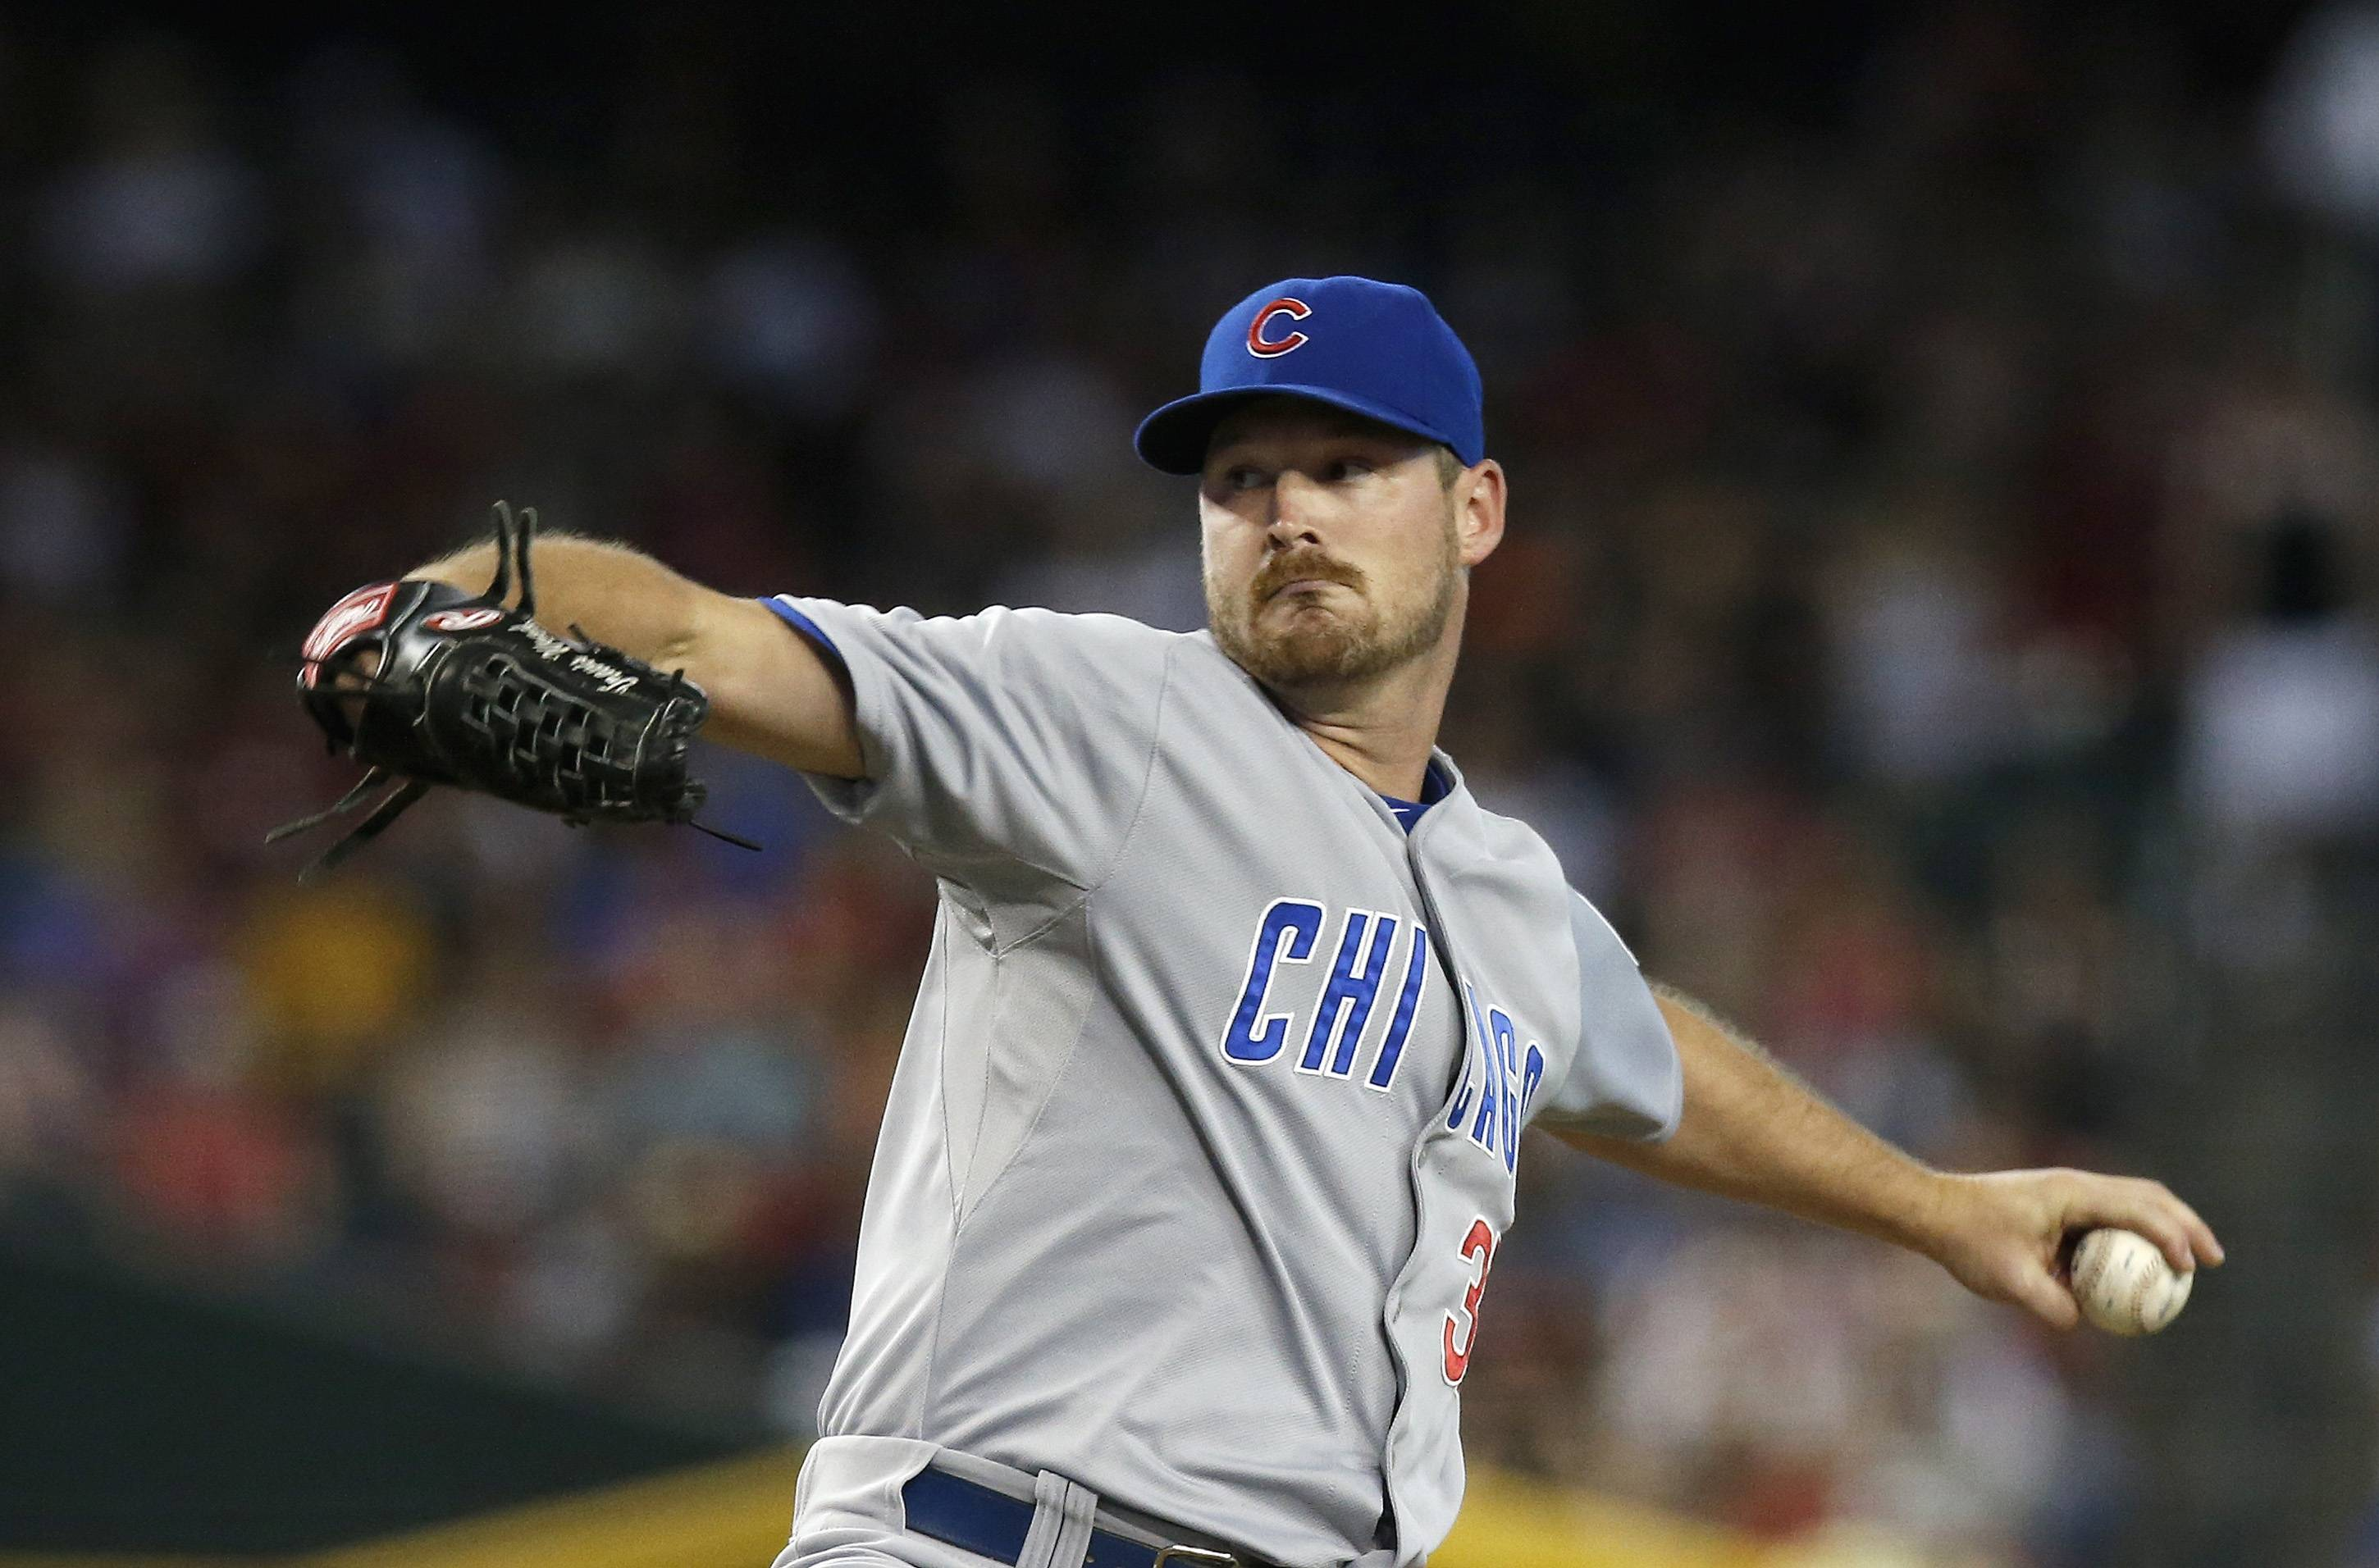 Cubs starter Travis Wood has taken a big step backward this season.